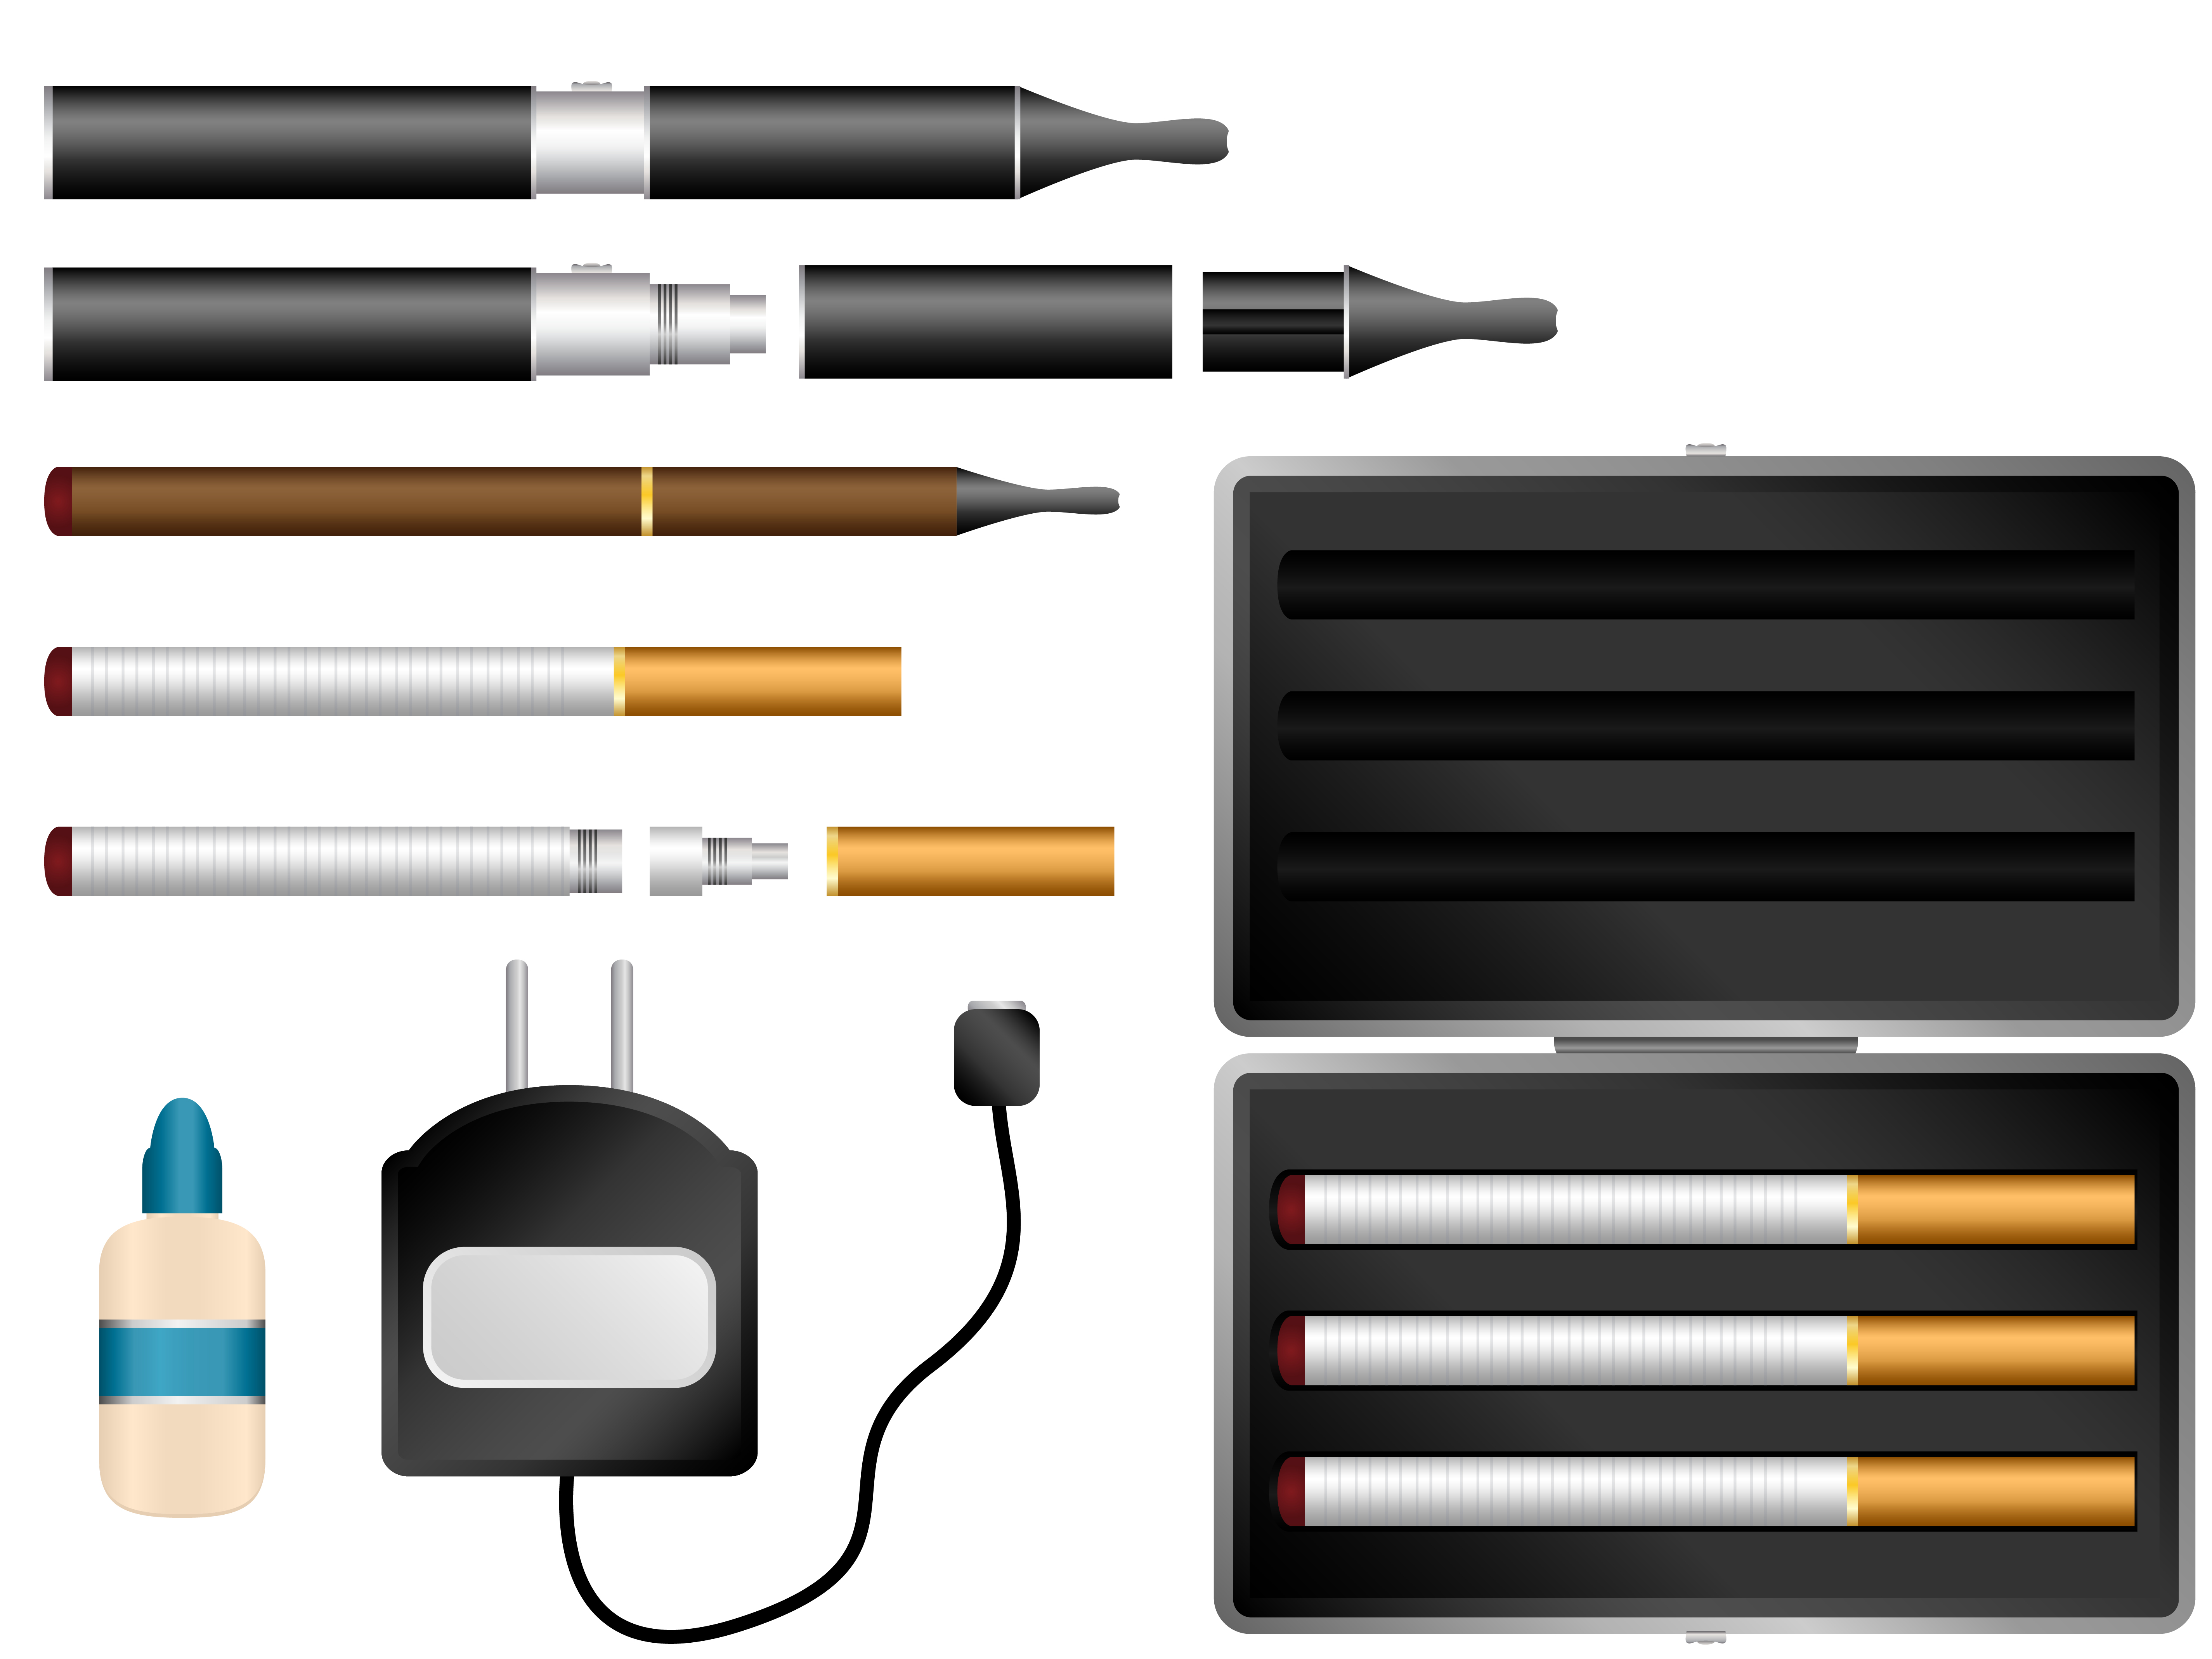 e-cigarette device